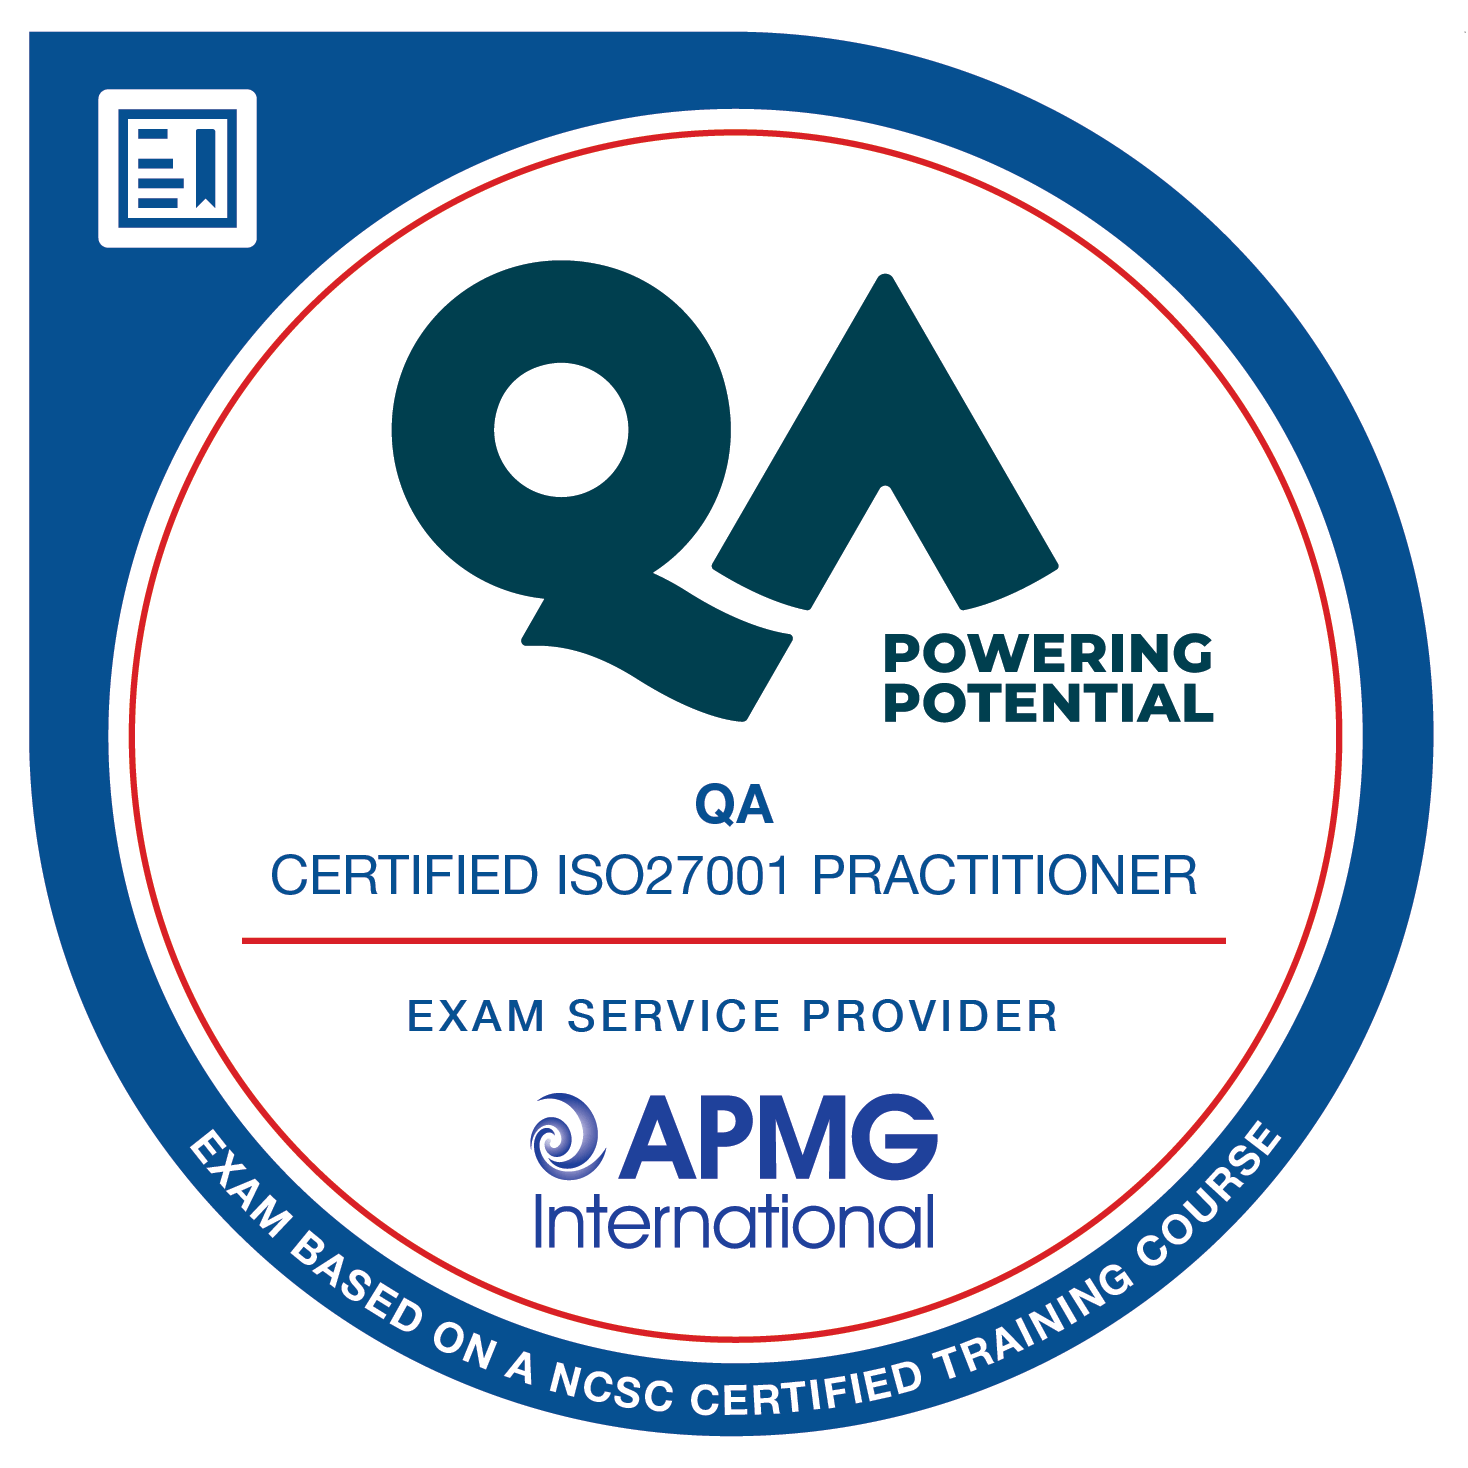 Certified ISO 27001 Practitioner